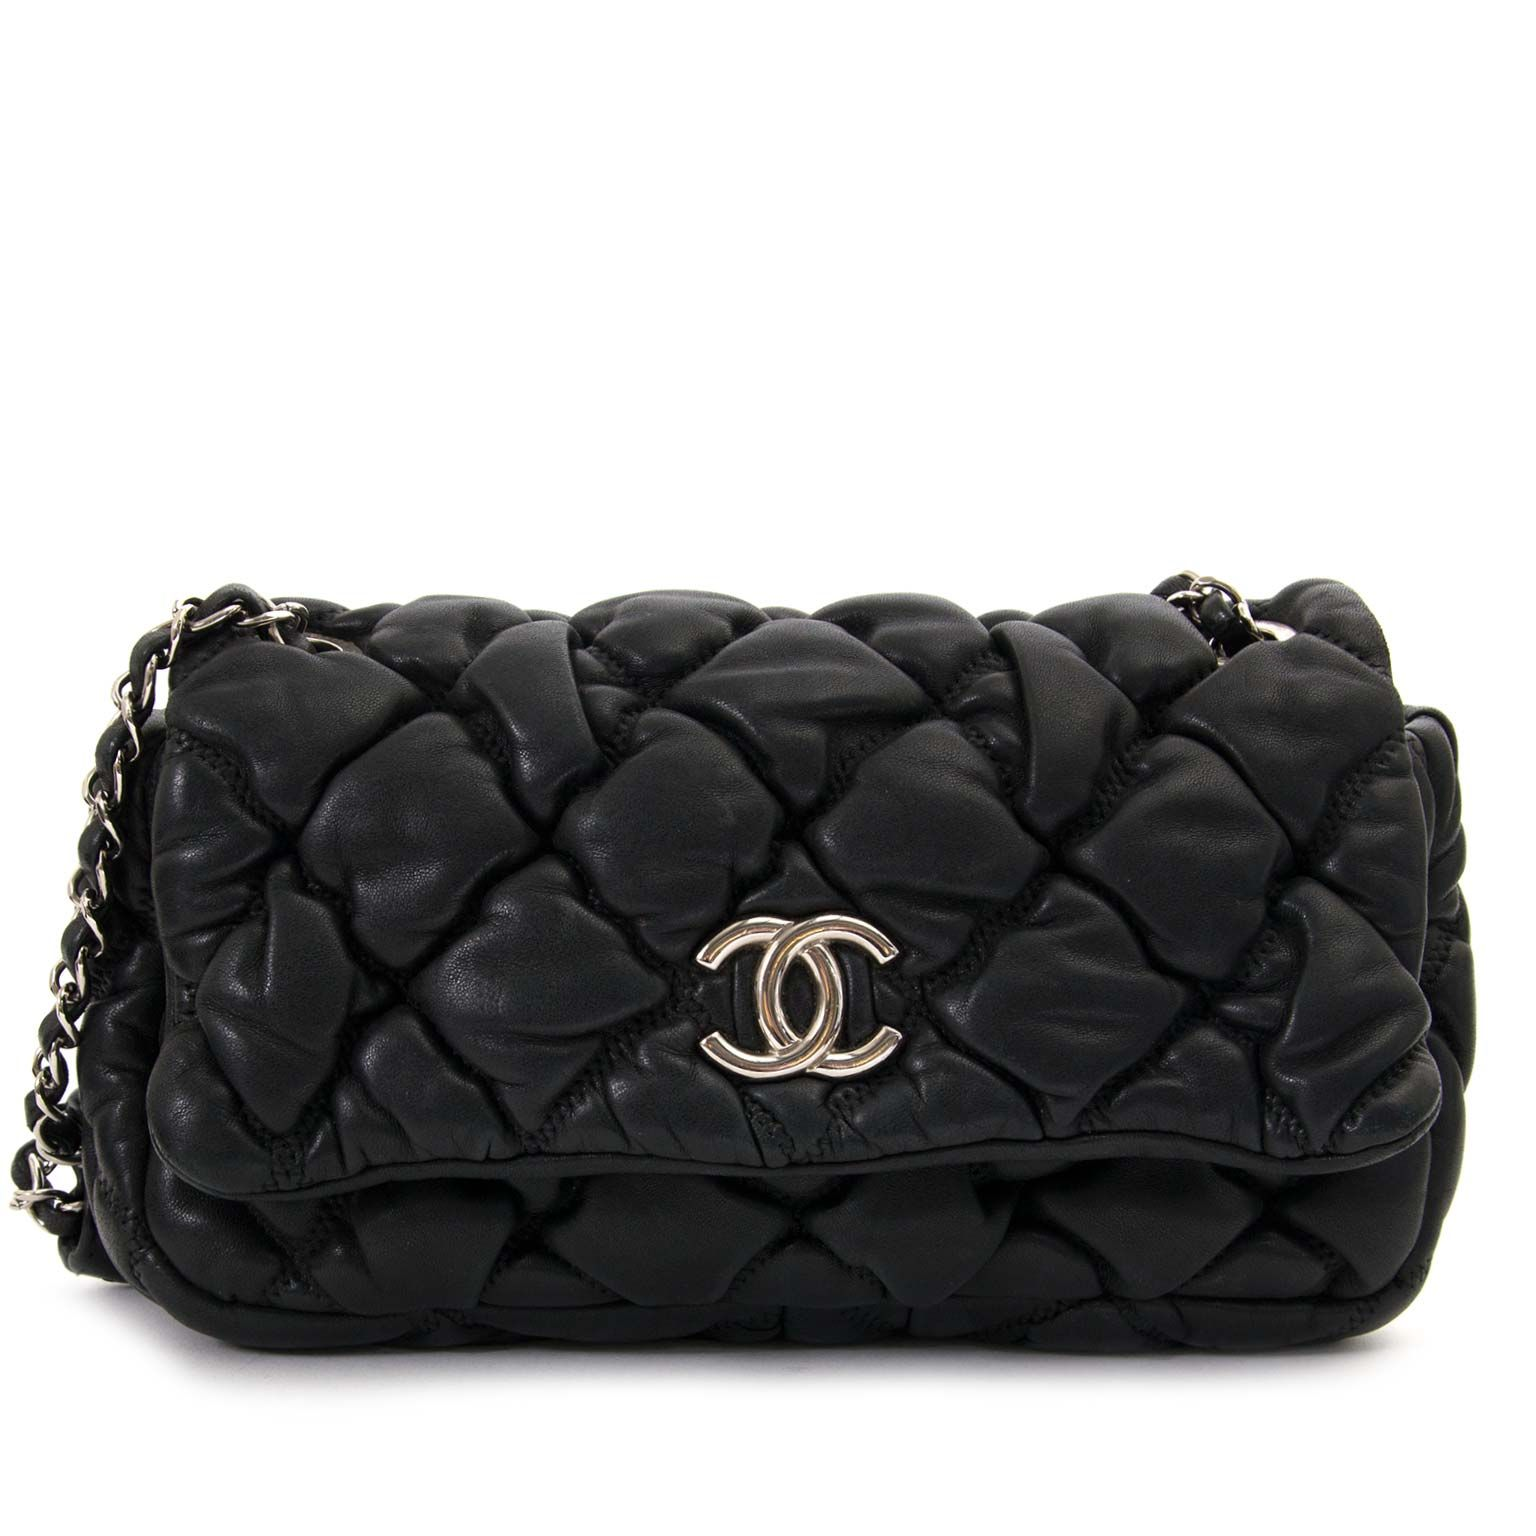 d3f3da12bc13 Chanel Black Lambskin Bubble Quilt Flap Bag now for sale at Labellov vintage  webshop.